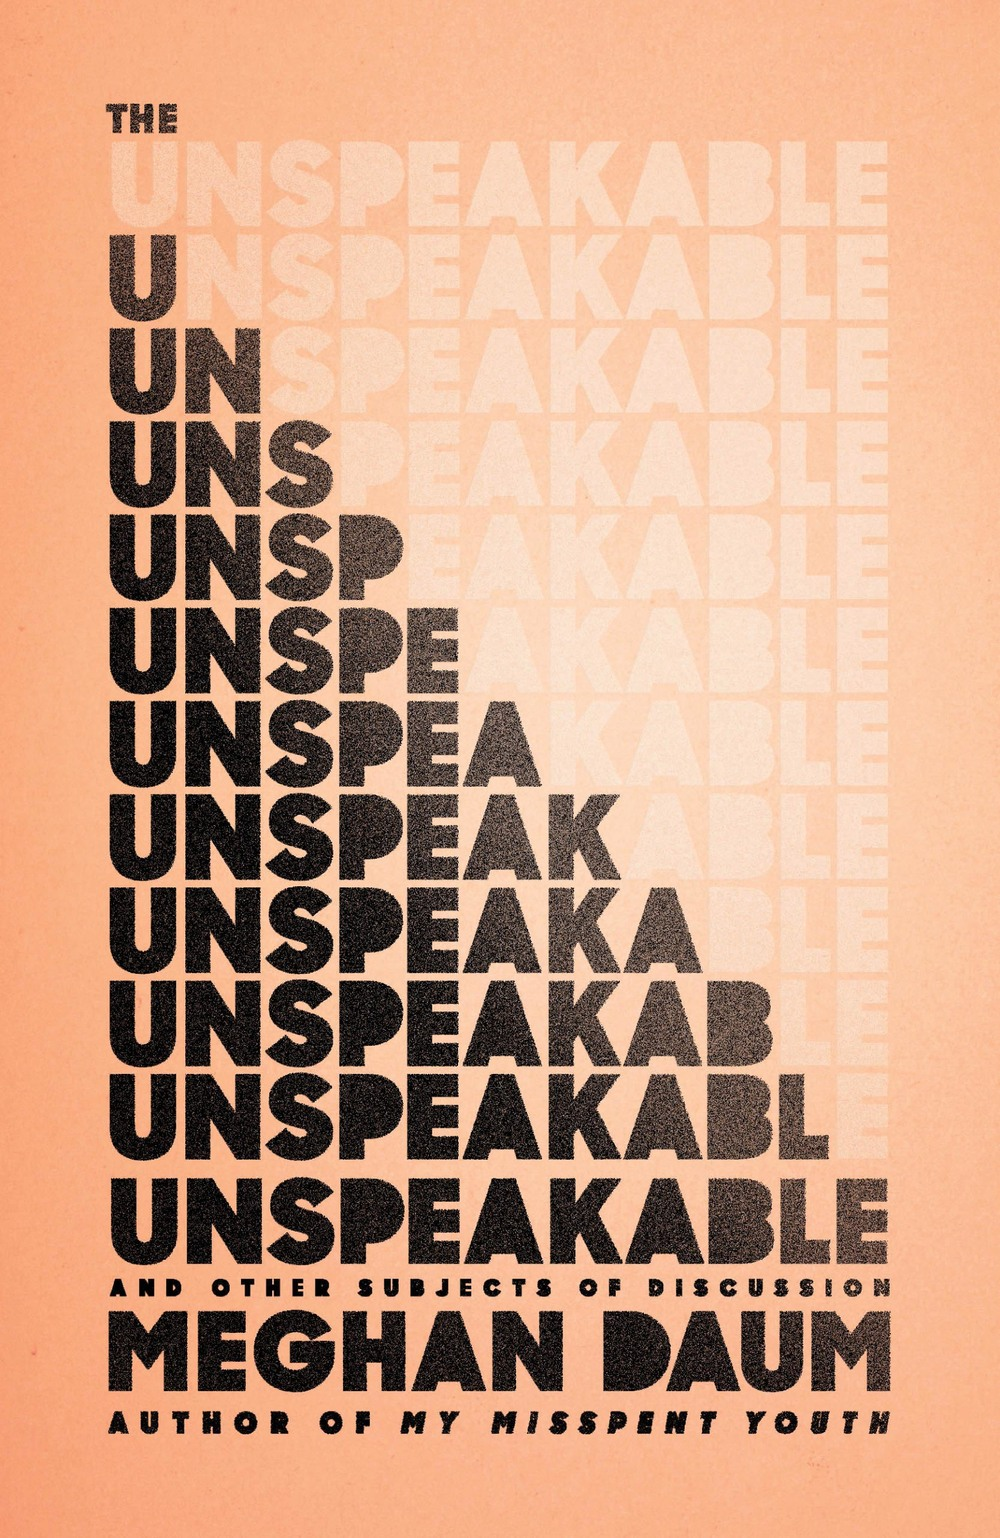 Meghan Daum - The Unspeakable